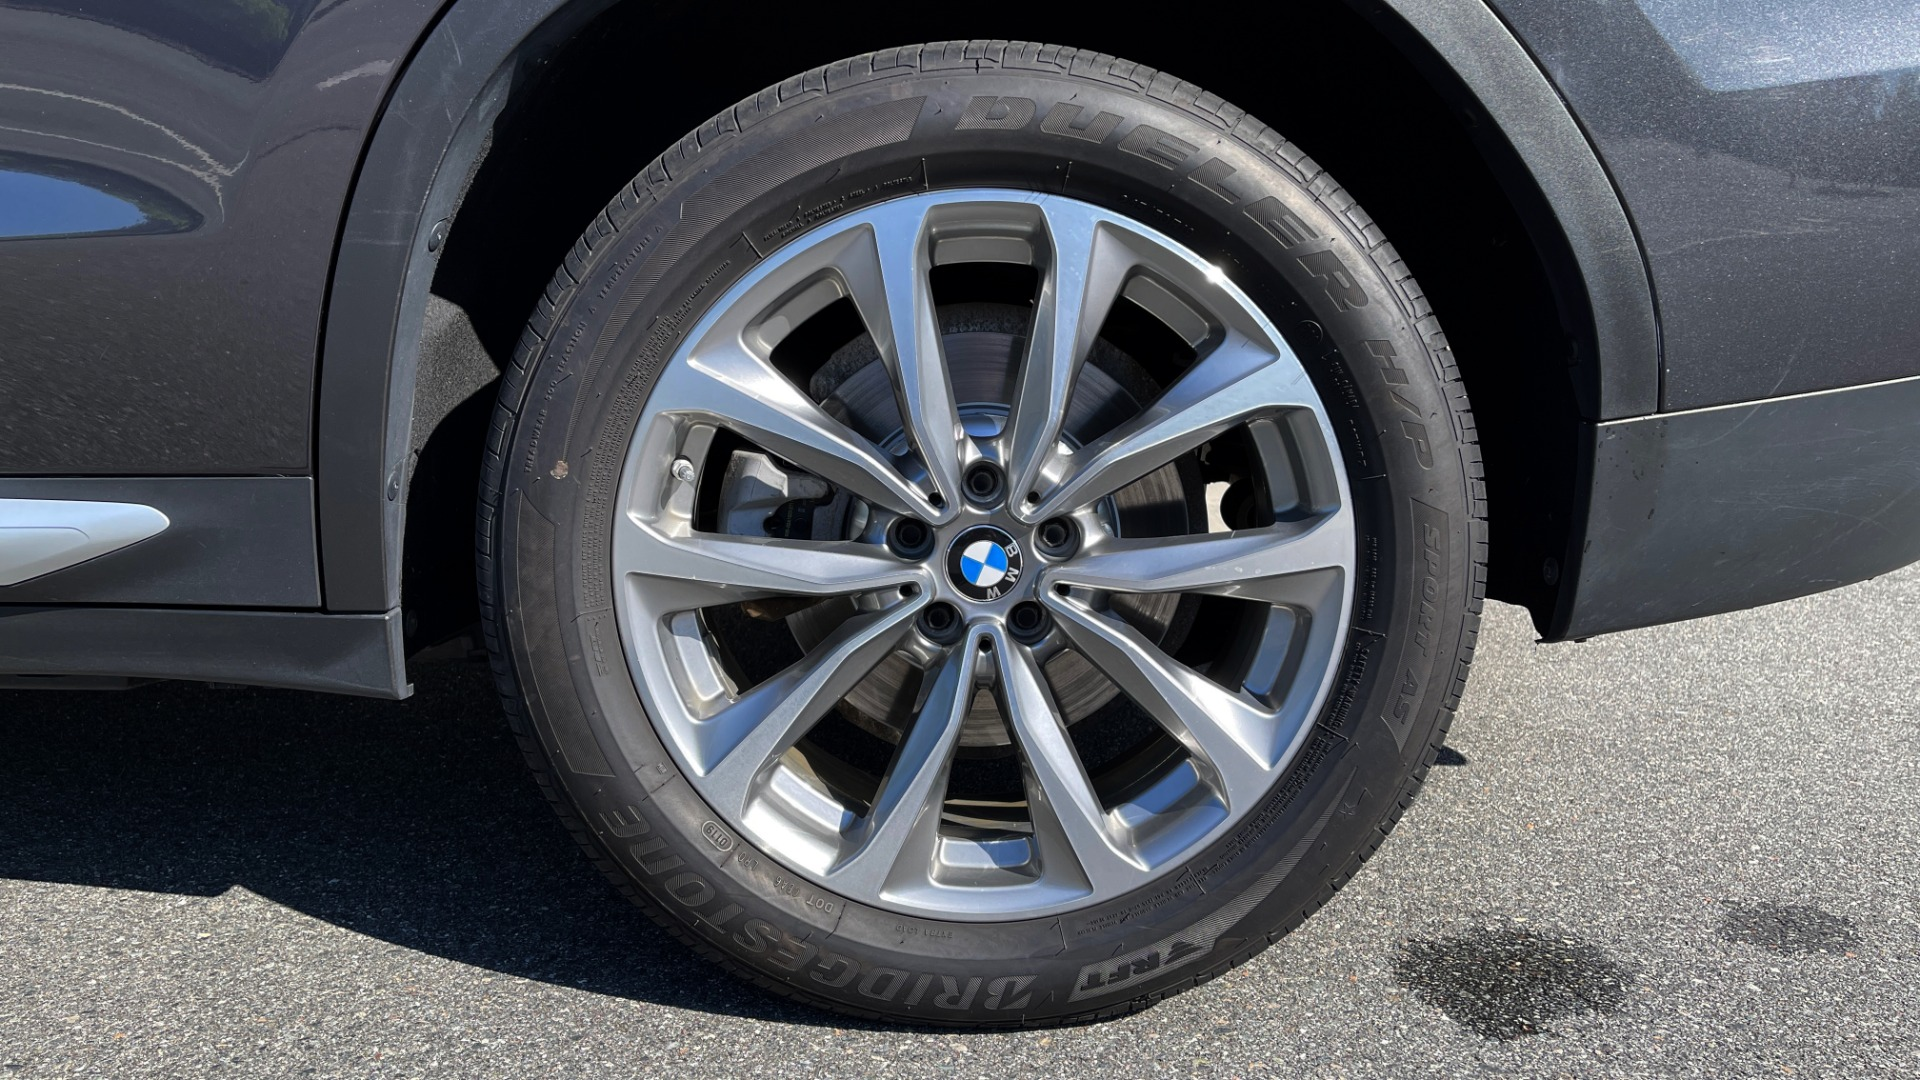 Used 2018 BMW X3 XDRIVE30I PREMIUM / NAV / DRVR ASST PLUS / CONV PKG / SUNROOF / REARVIEW for sale $33,795 at Formula Imports in Charlotte NC 28227 80